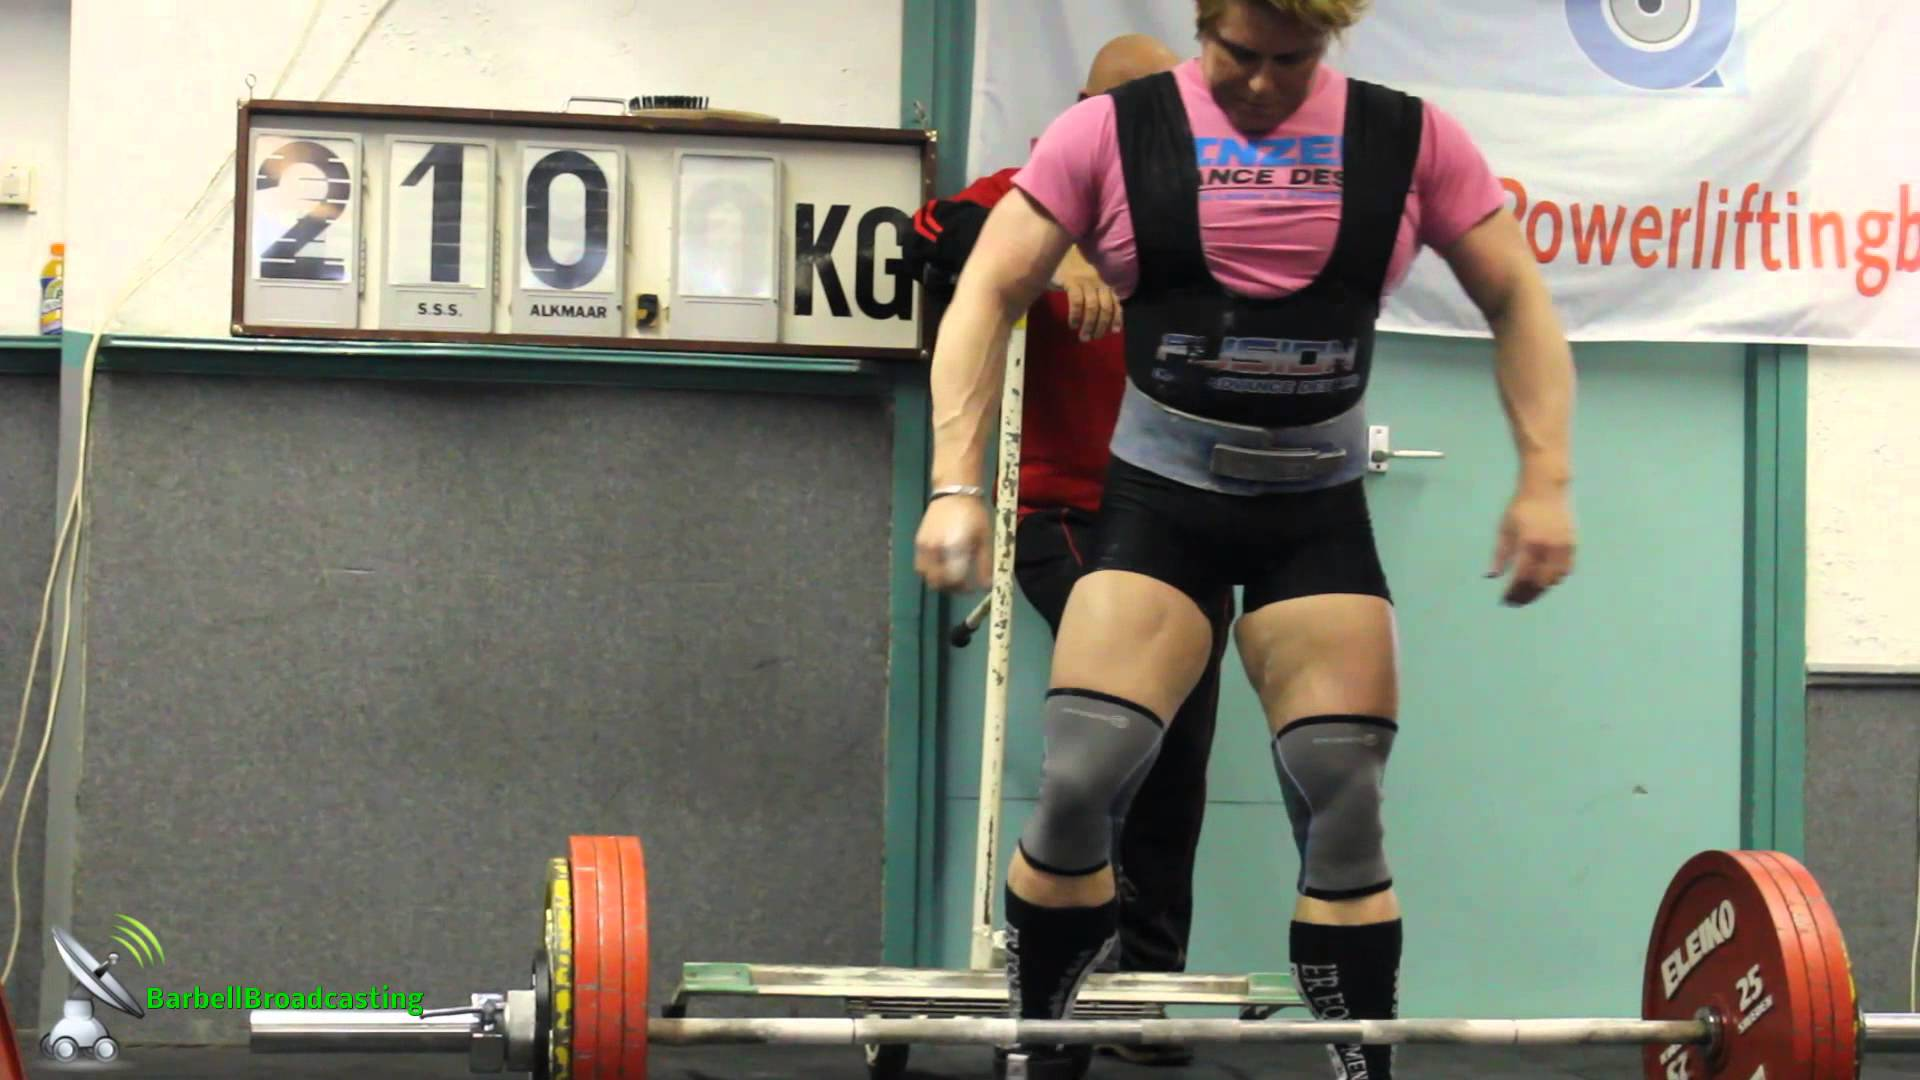 Ielja Strik – Dutch Powerlifting Nationals 2013